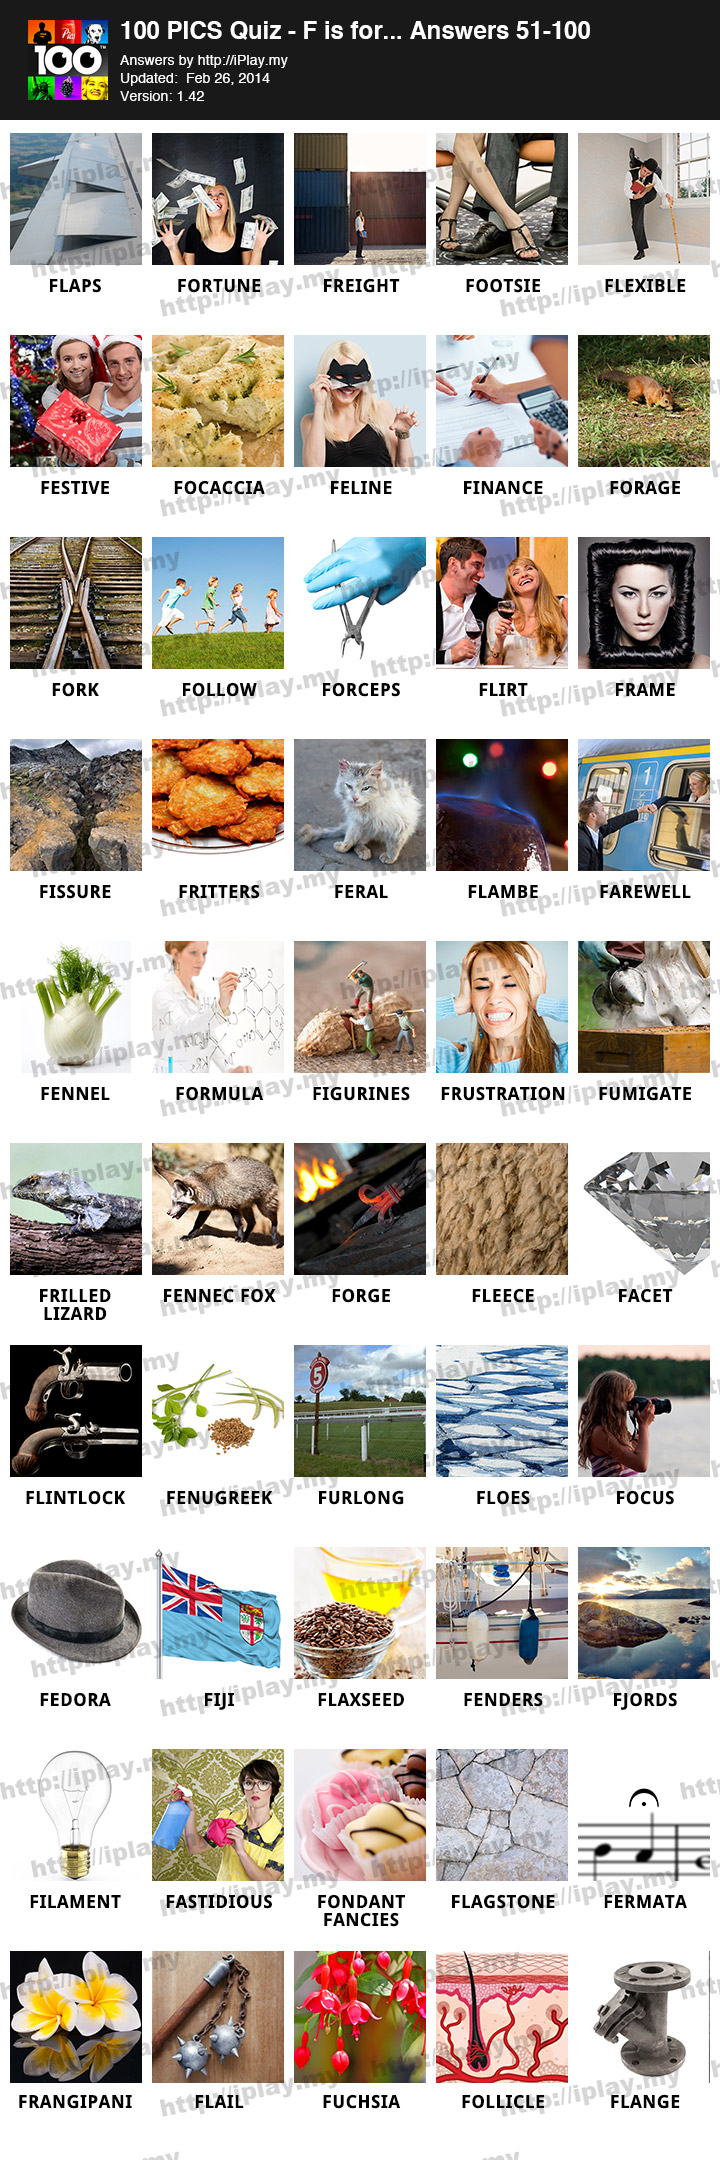 100 PICS F is for Answers   iPlay my